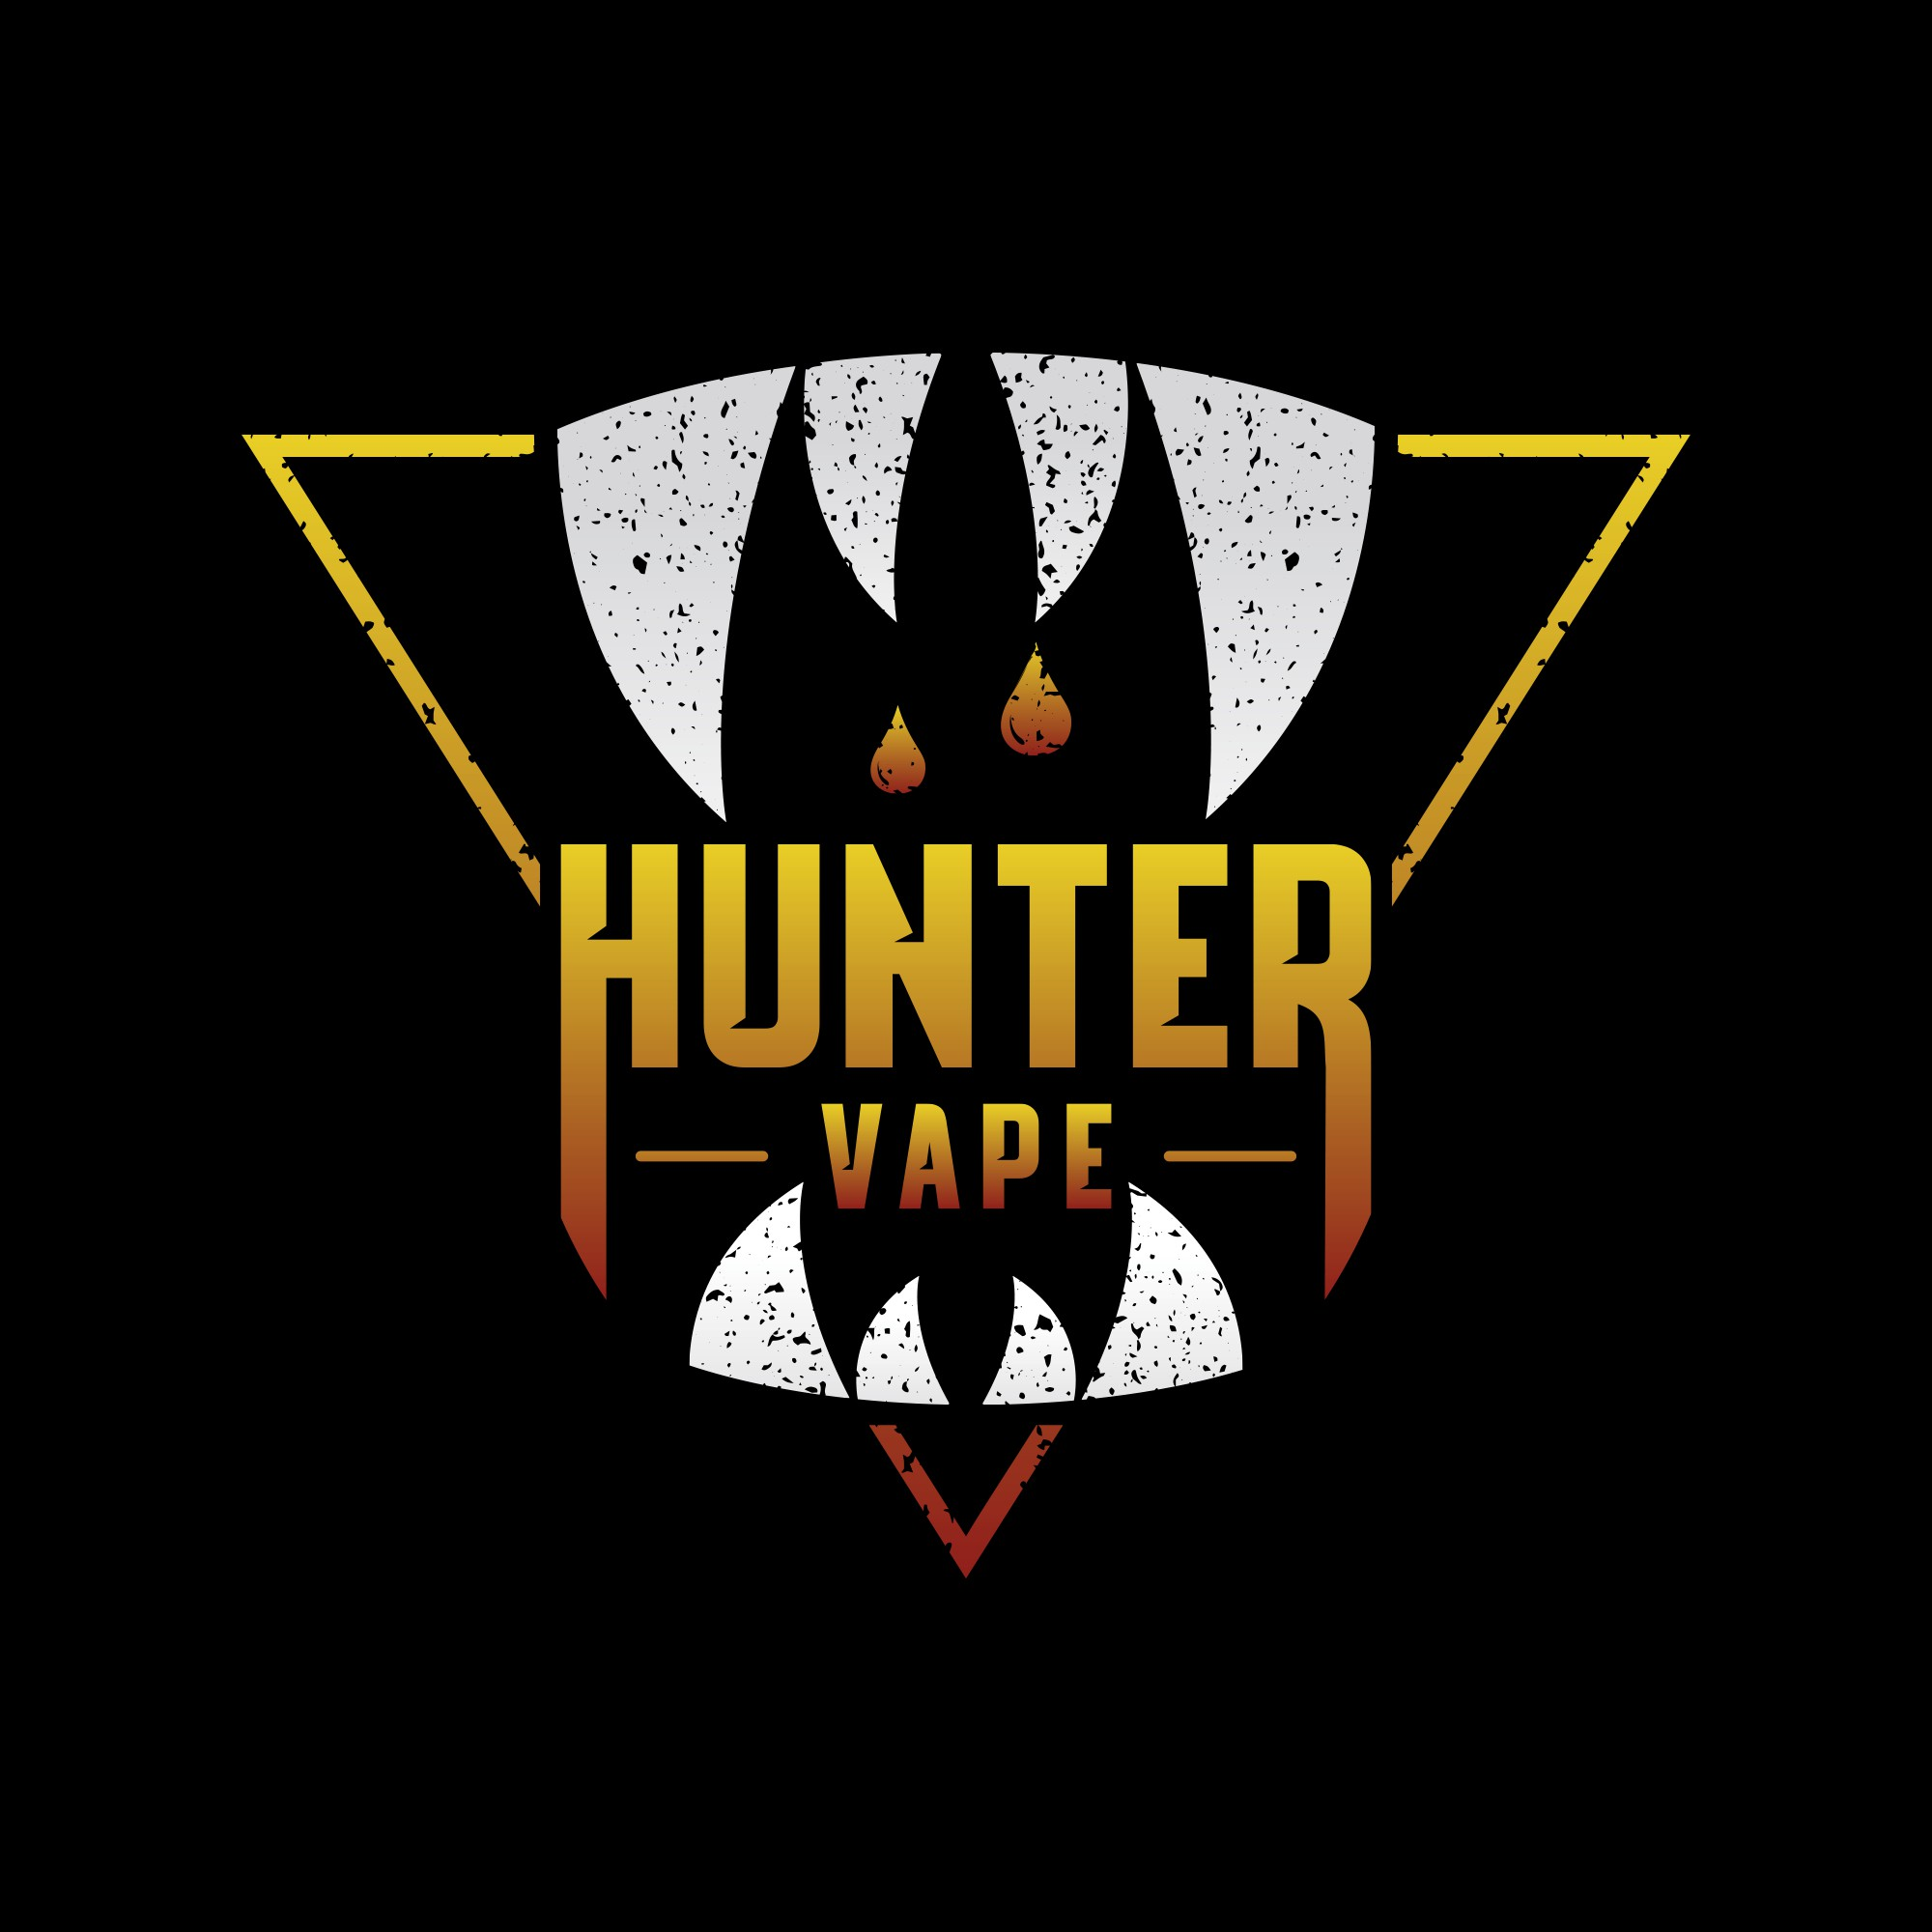 hunter vape